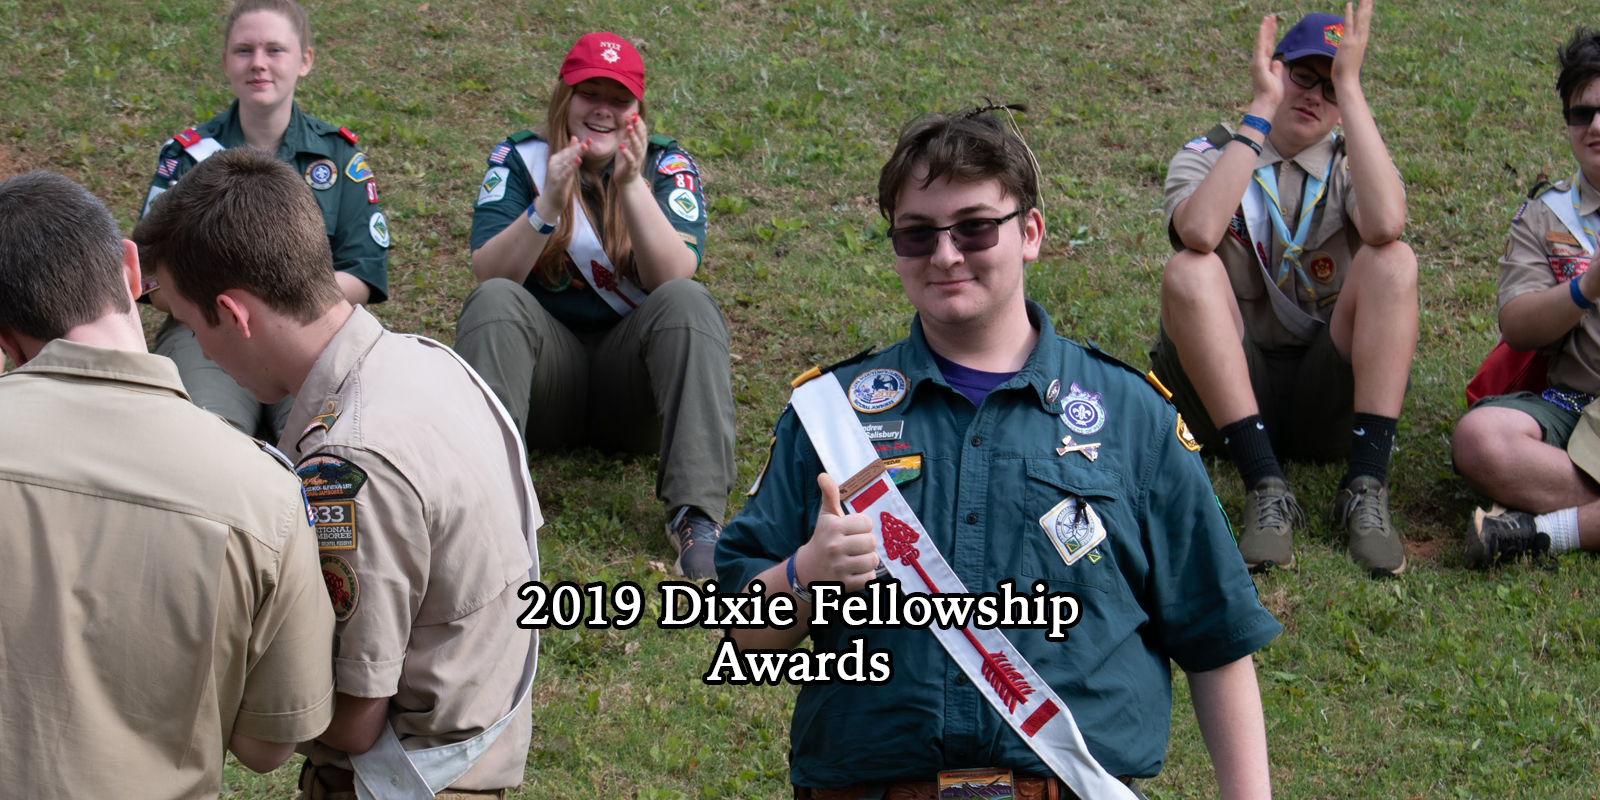 2019 Dixie Fellowship Awards